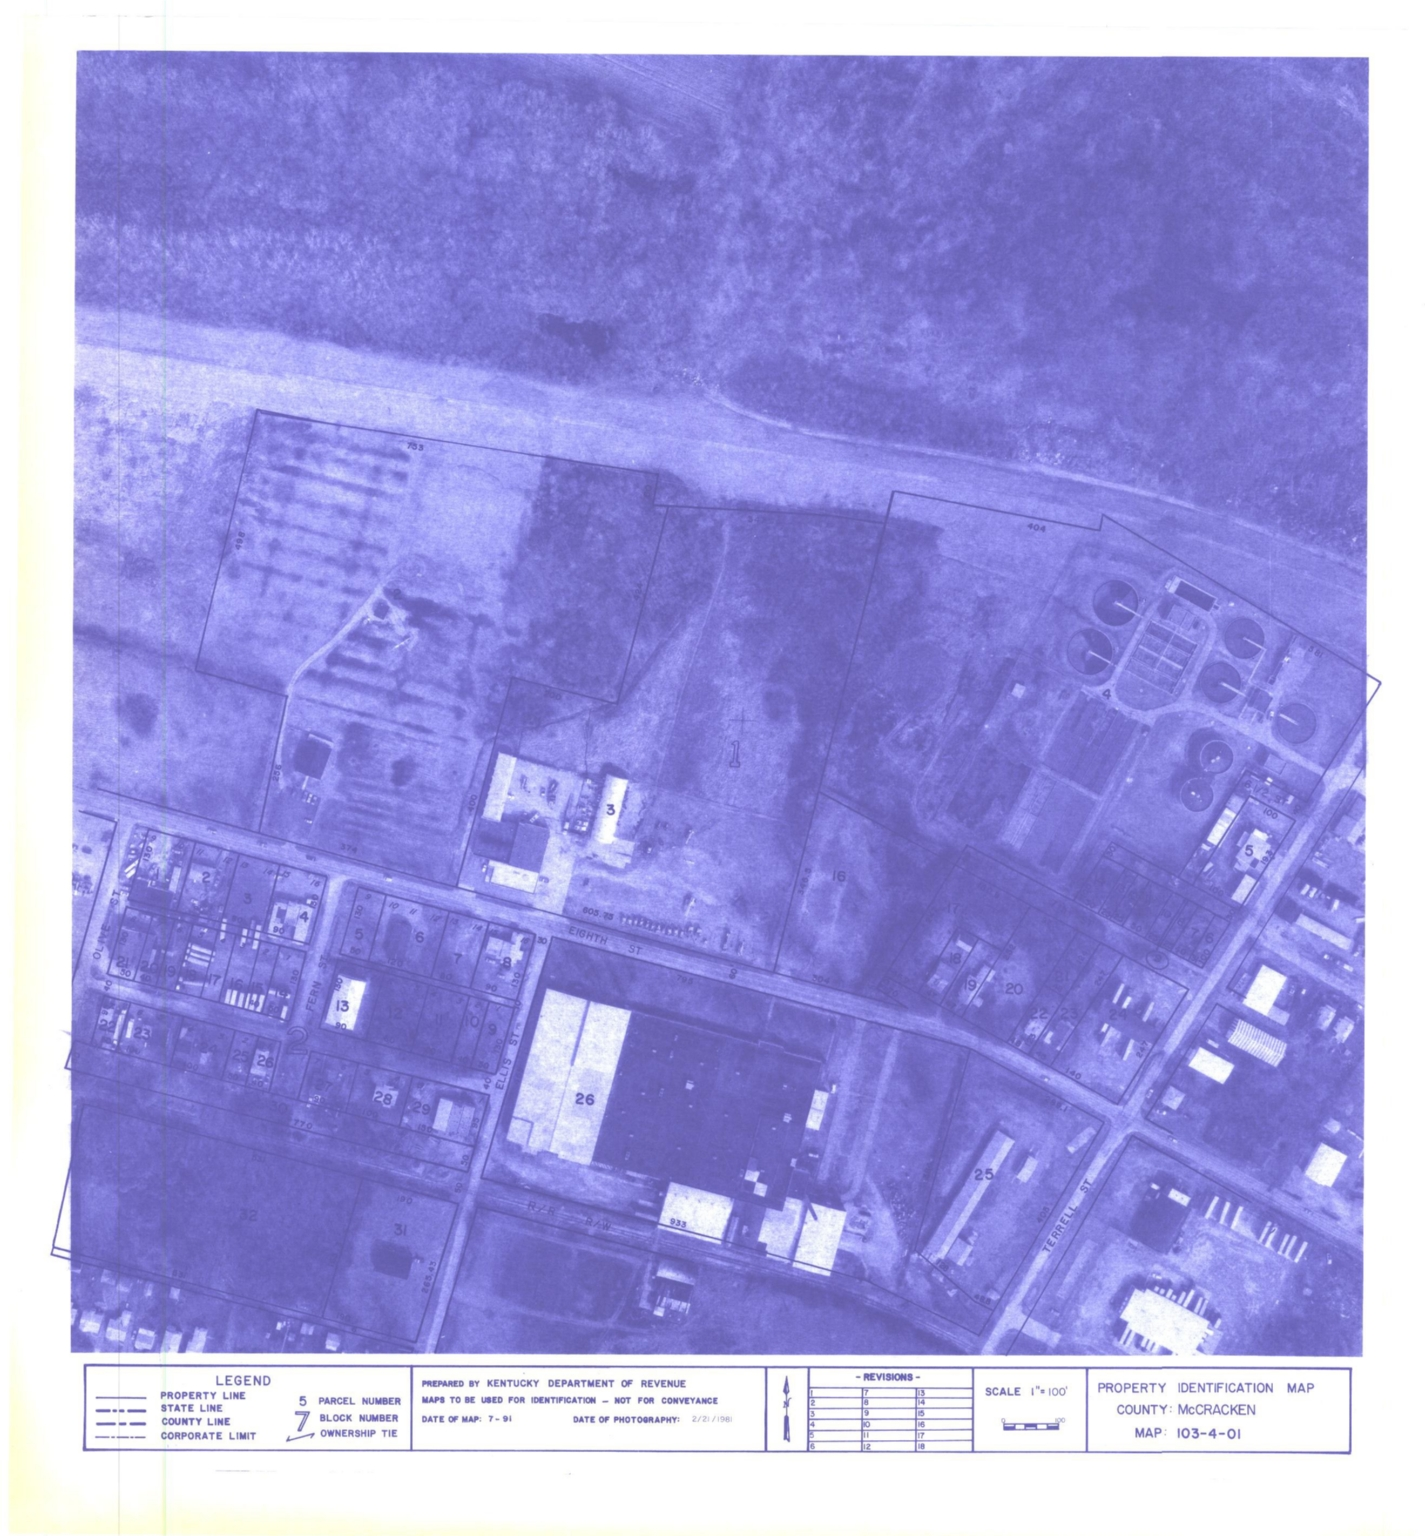 Property Identification Map McCracken County, Map 103-04-01